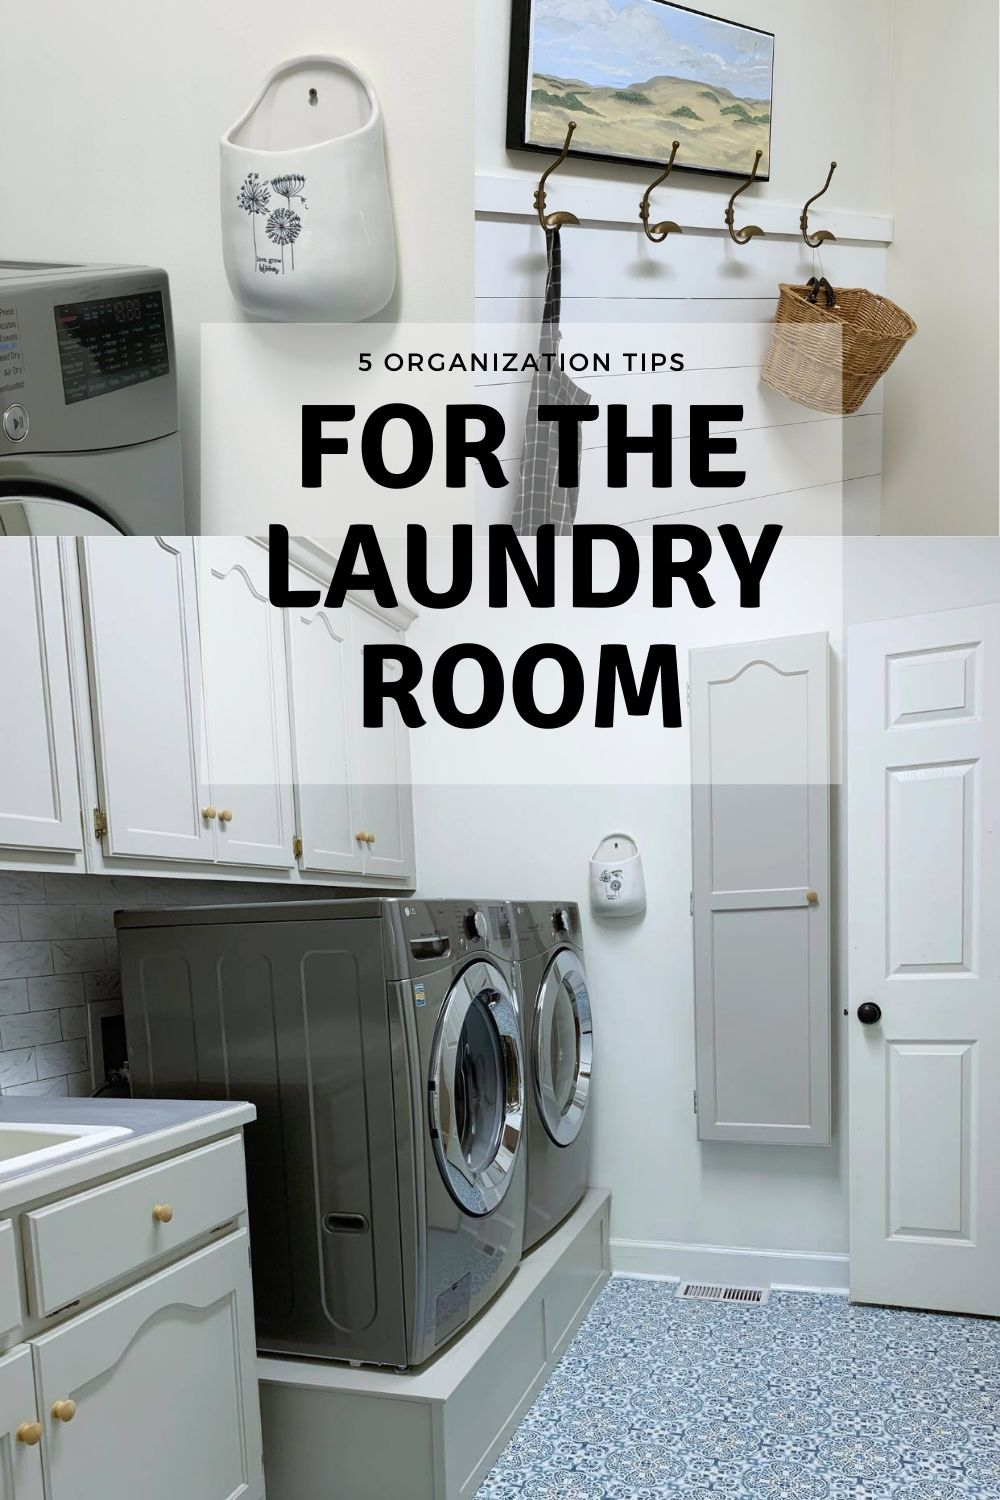 5 organization tips for the laundry room